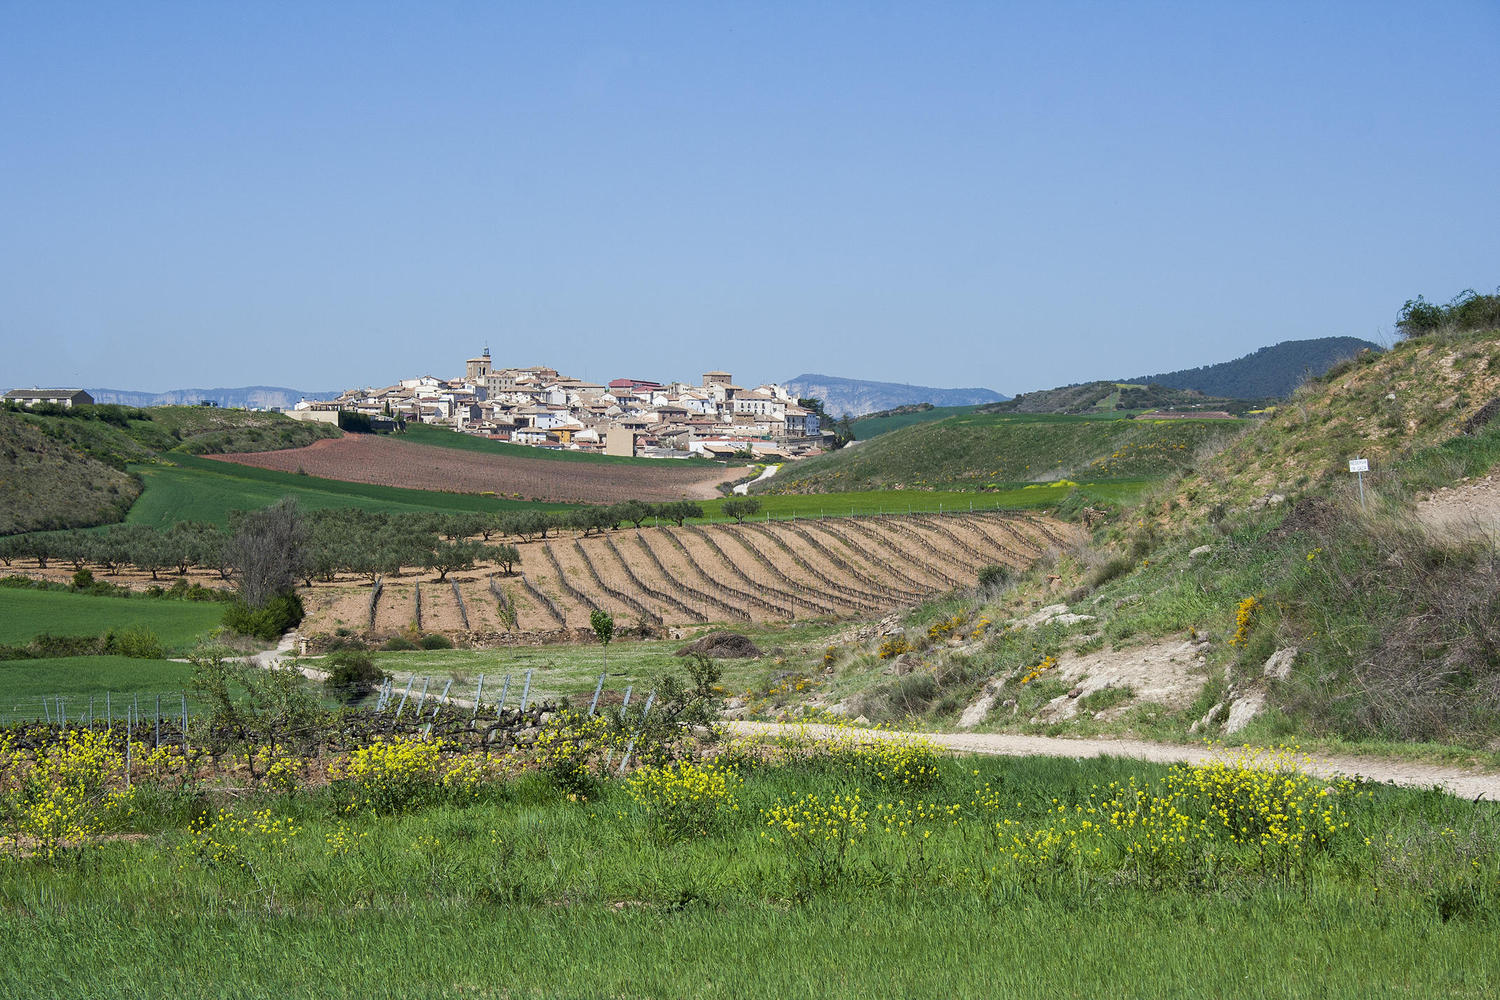 The hilltop village of Cirauqui in the horizon.